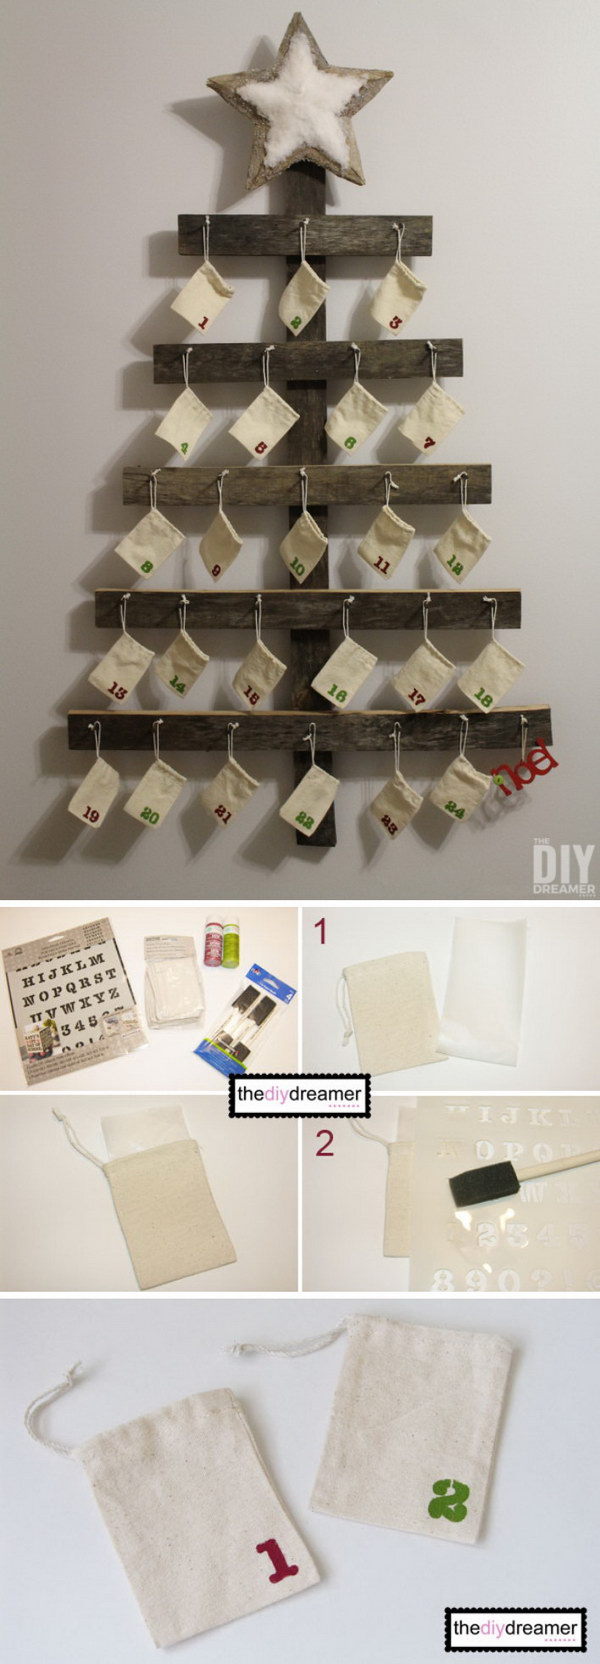 Calendar Ideas Diy : Diy rustic christmas decoration ideas tutorials